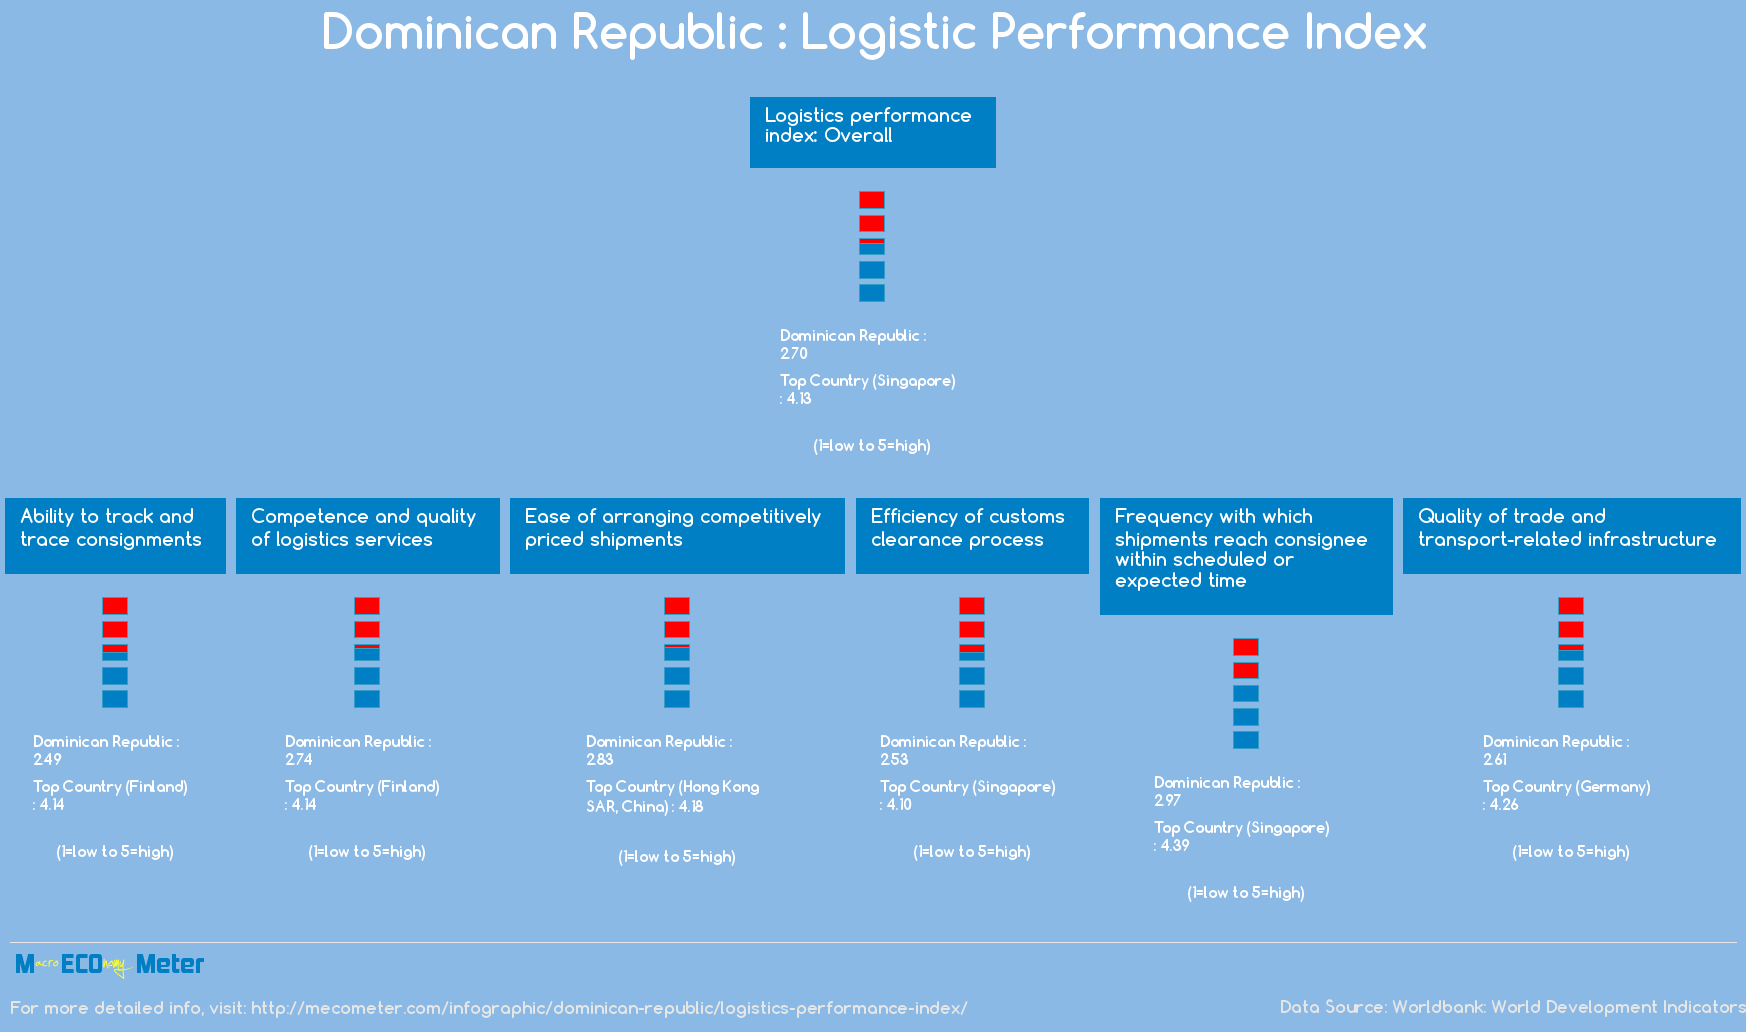 Dominican Republic : Logistic Performance Index